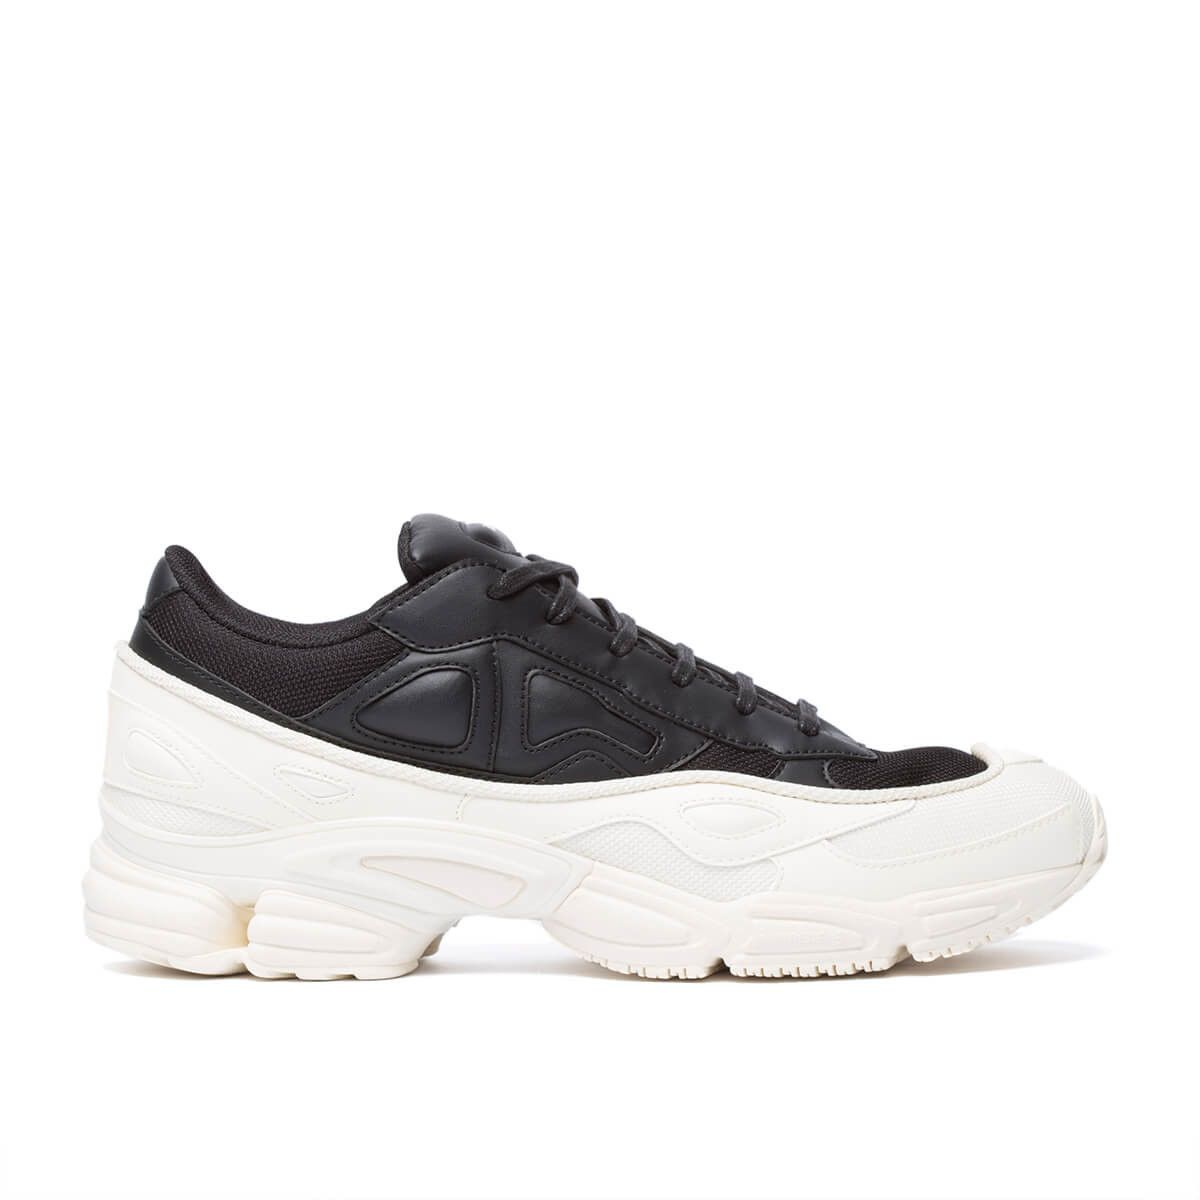 64b6783af Ozweego sneakers from the F/W2018-19 Raf Simons x Adidas collection in white